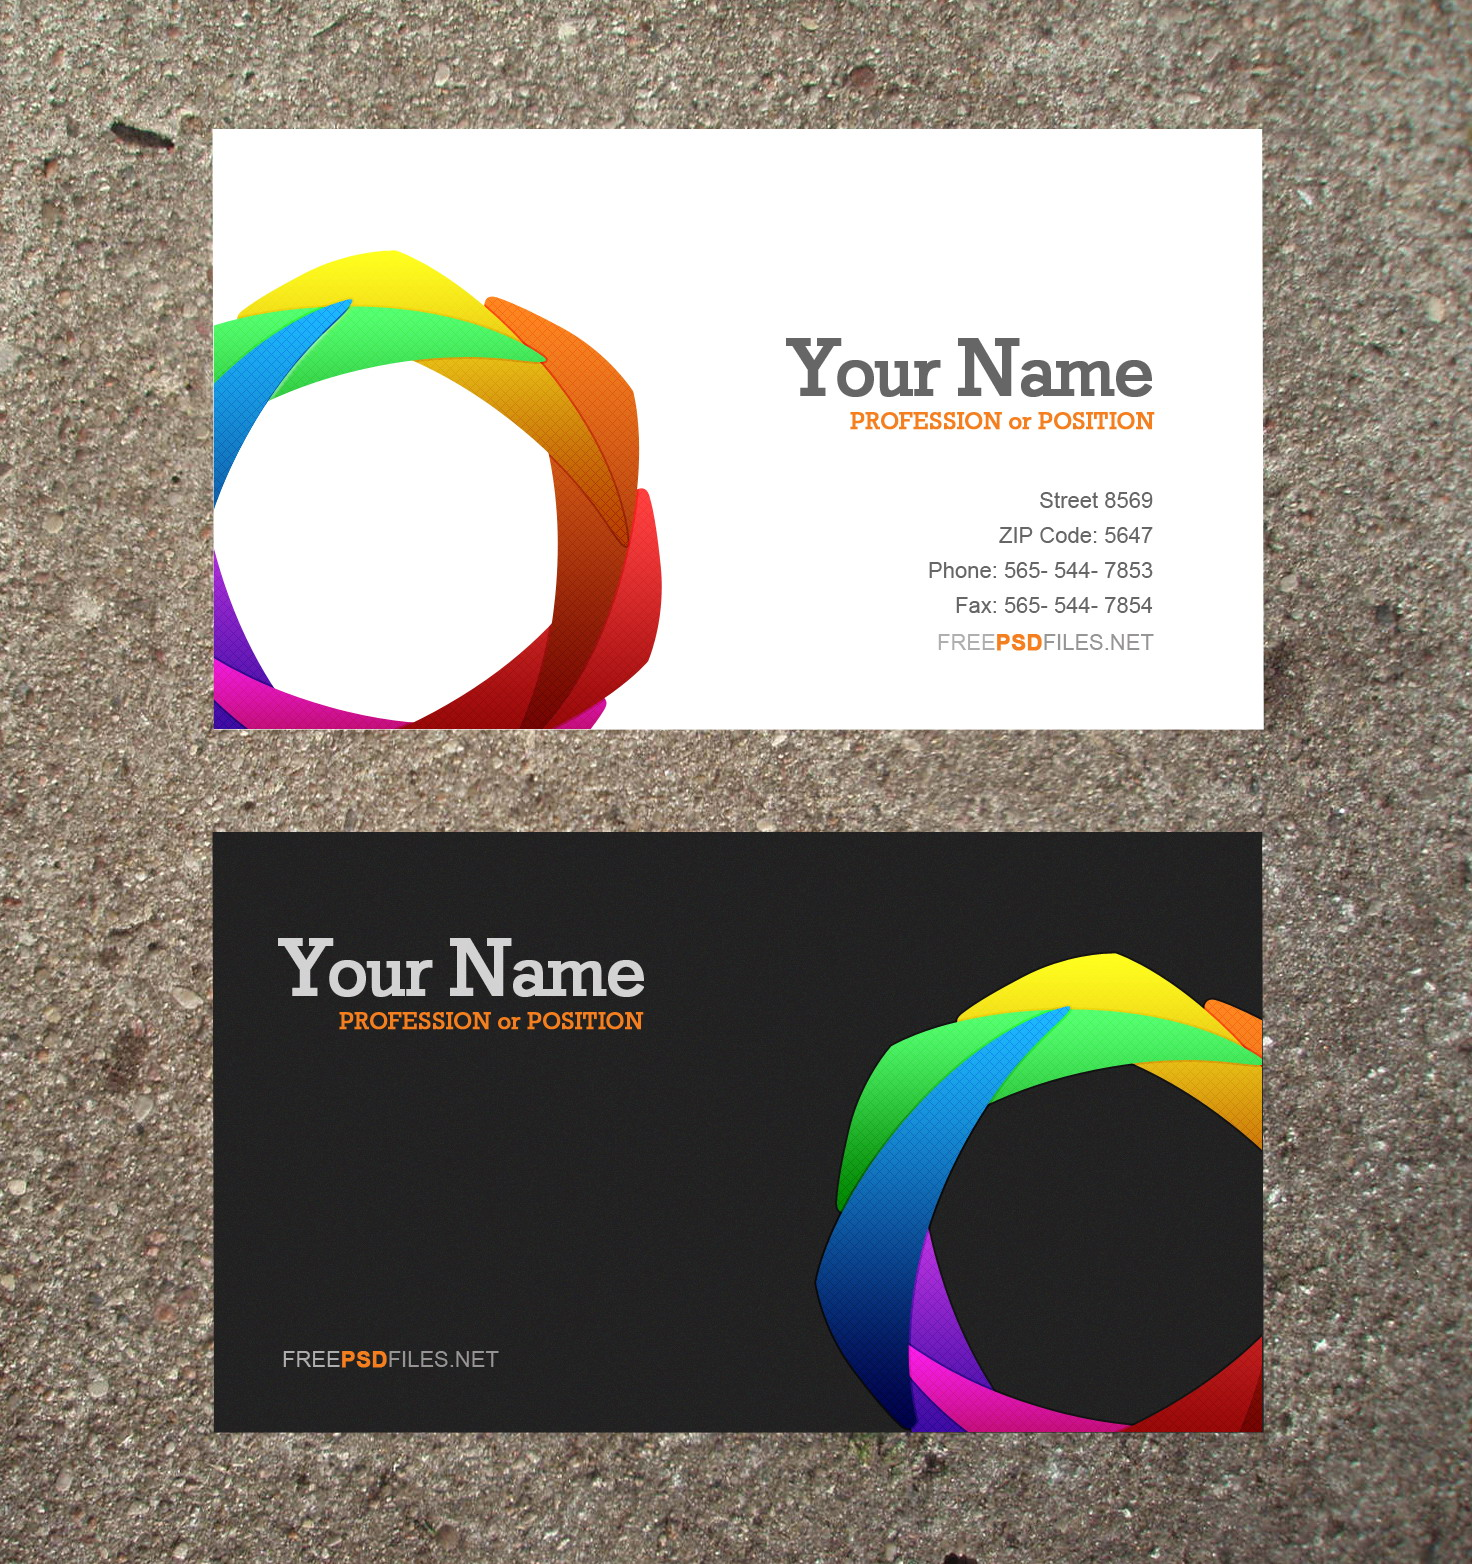 Business card template 28 images web design business card business card template 10 modern business card psd template free images free wajeb